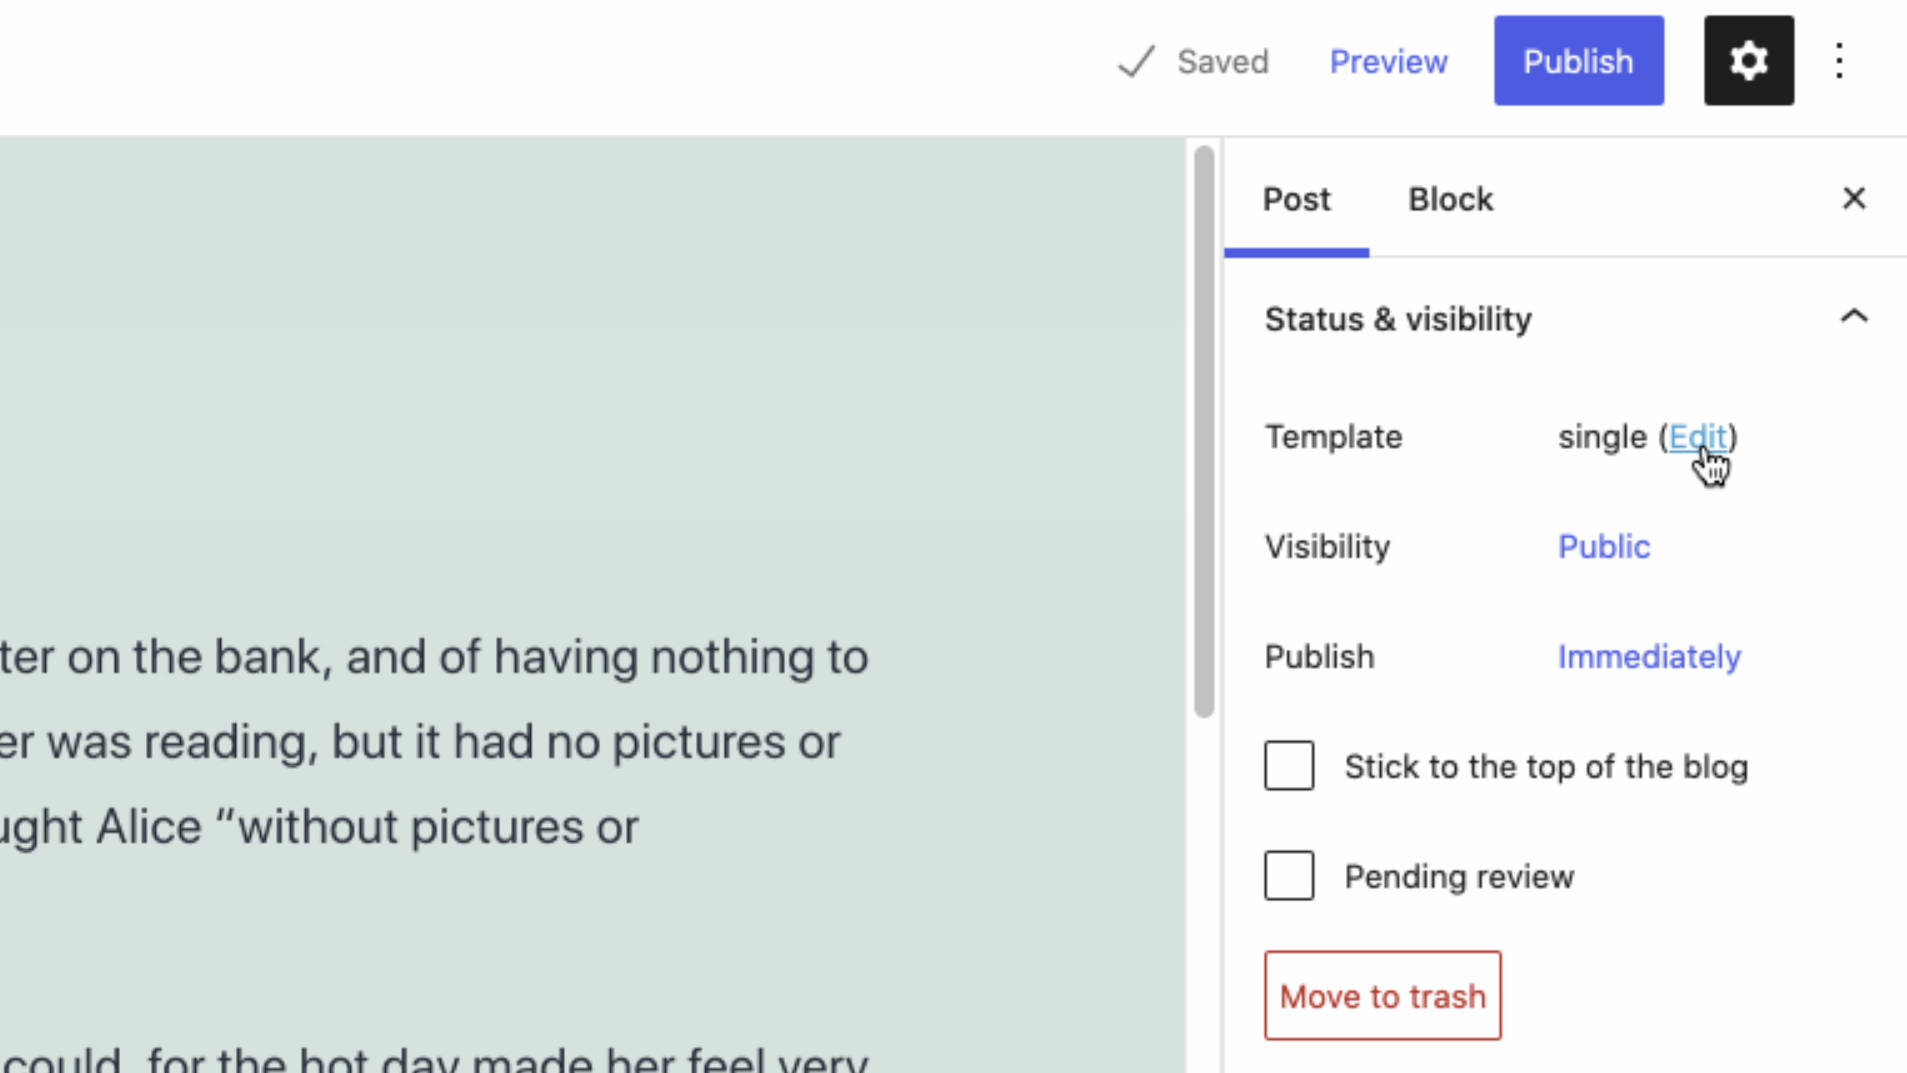 """Template"" editing option in the WordPress post editor."